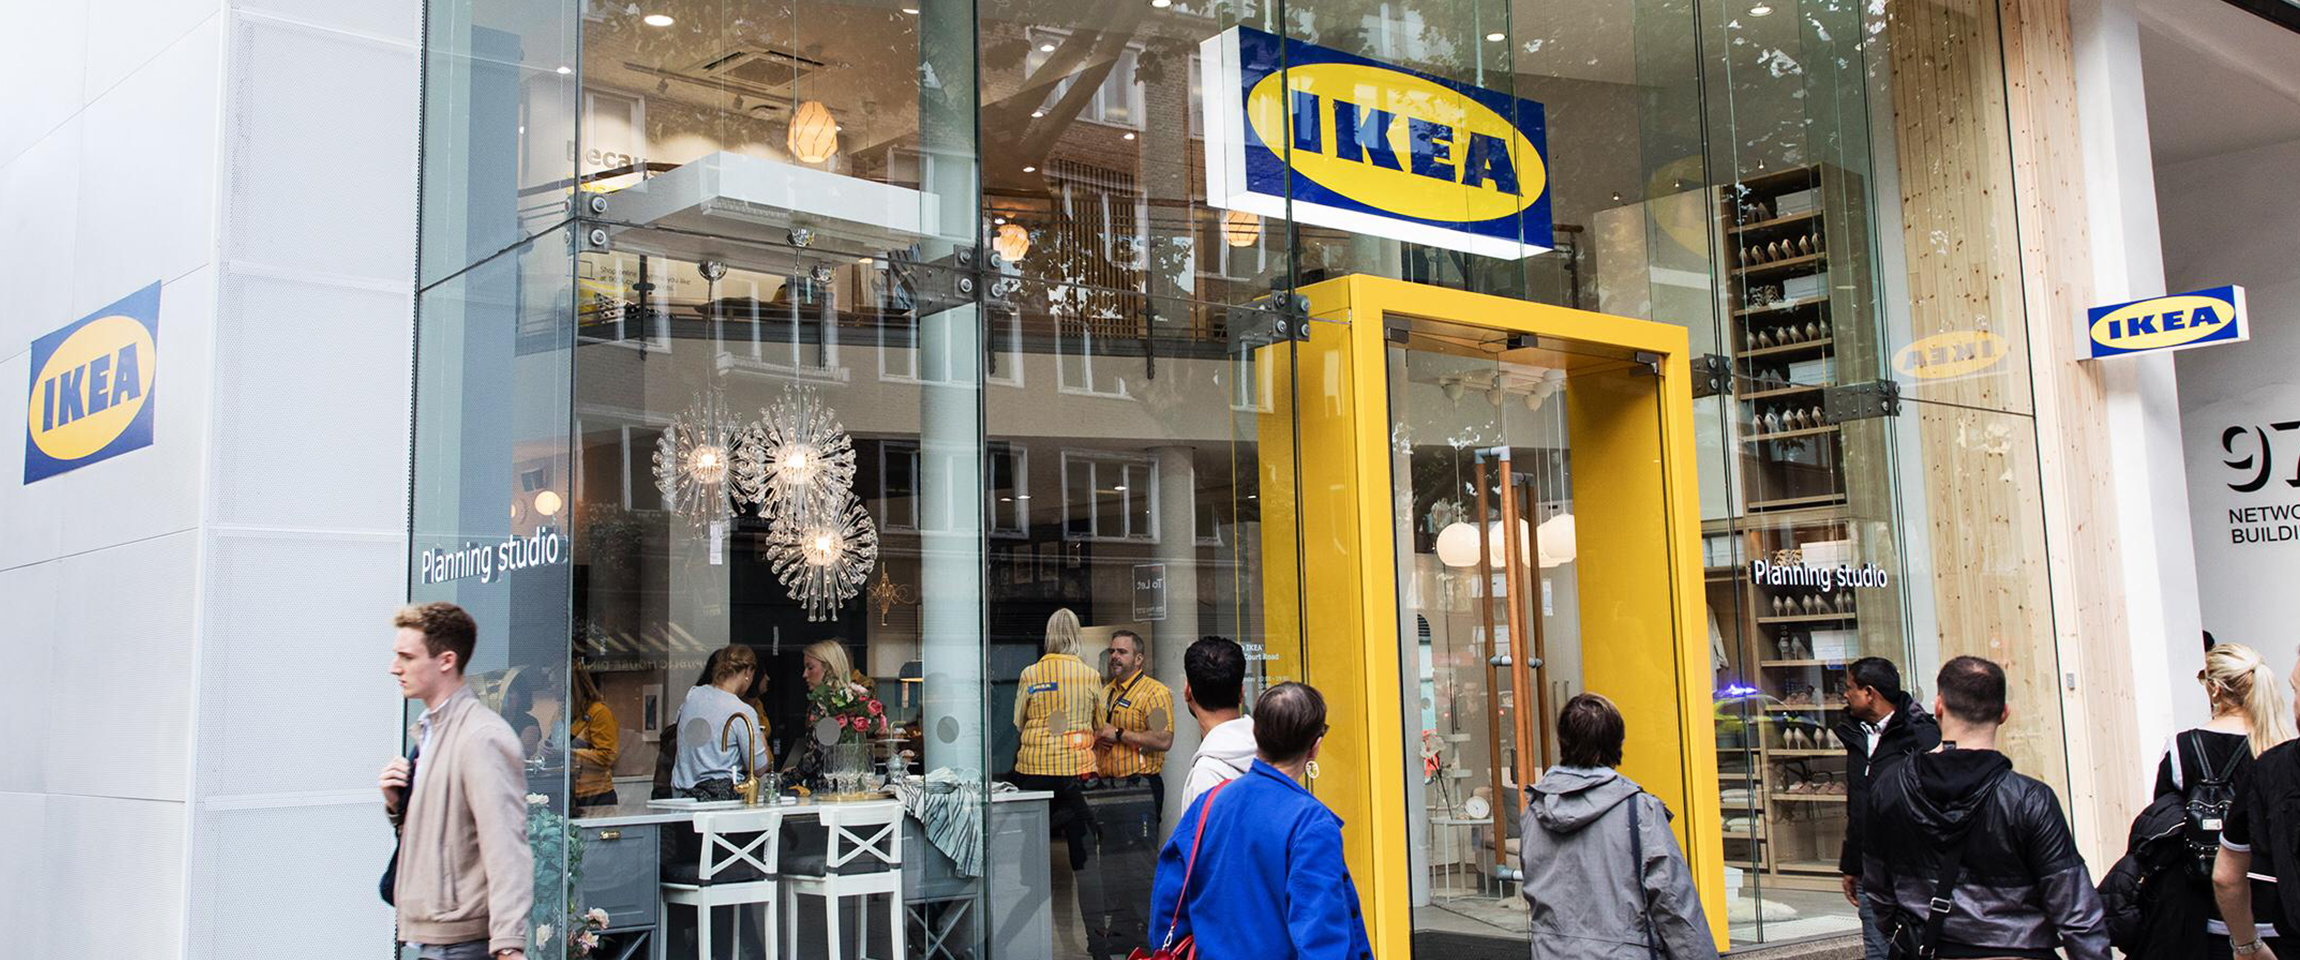 5 Service Lessons from Ikea's Manhattan Planning Studio